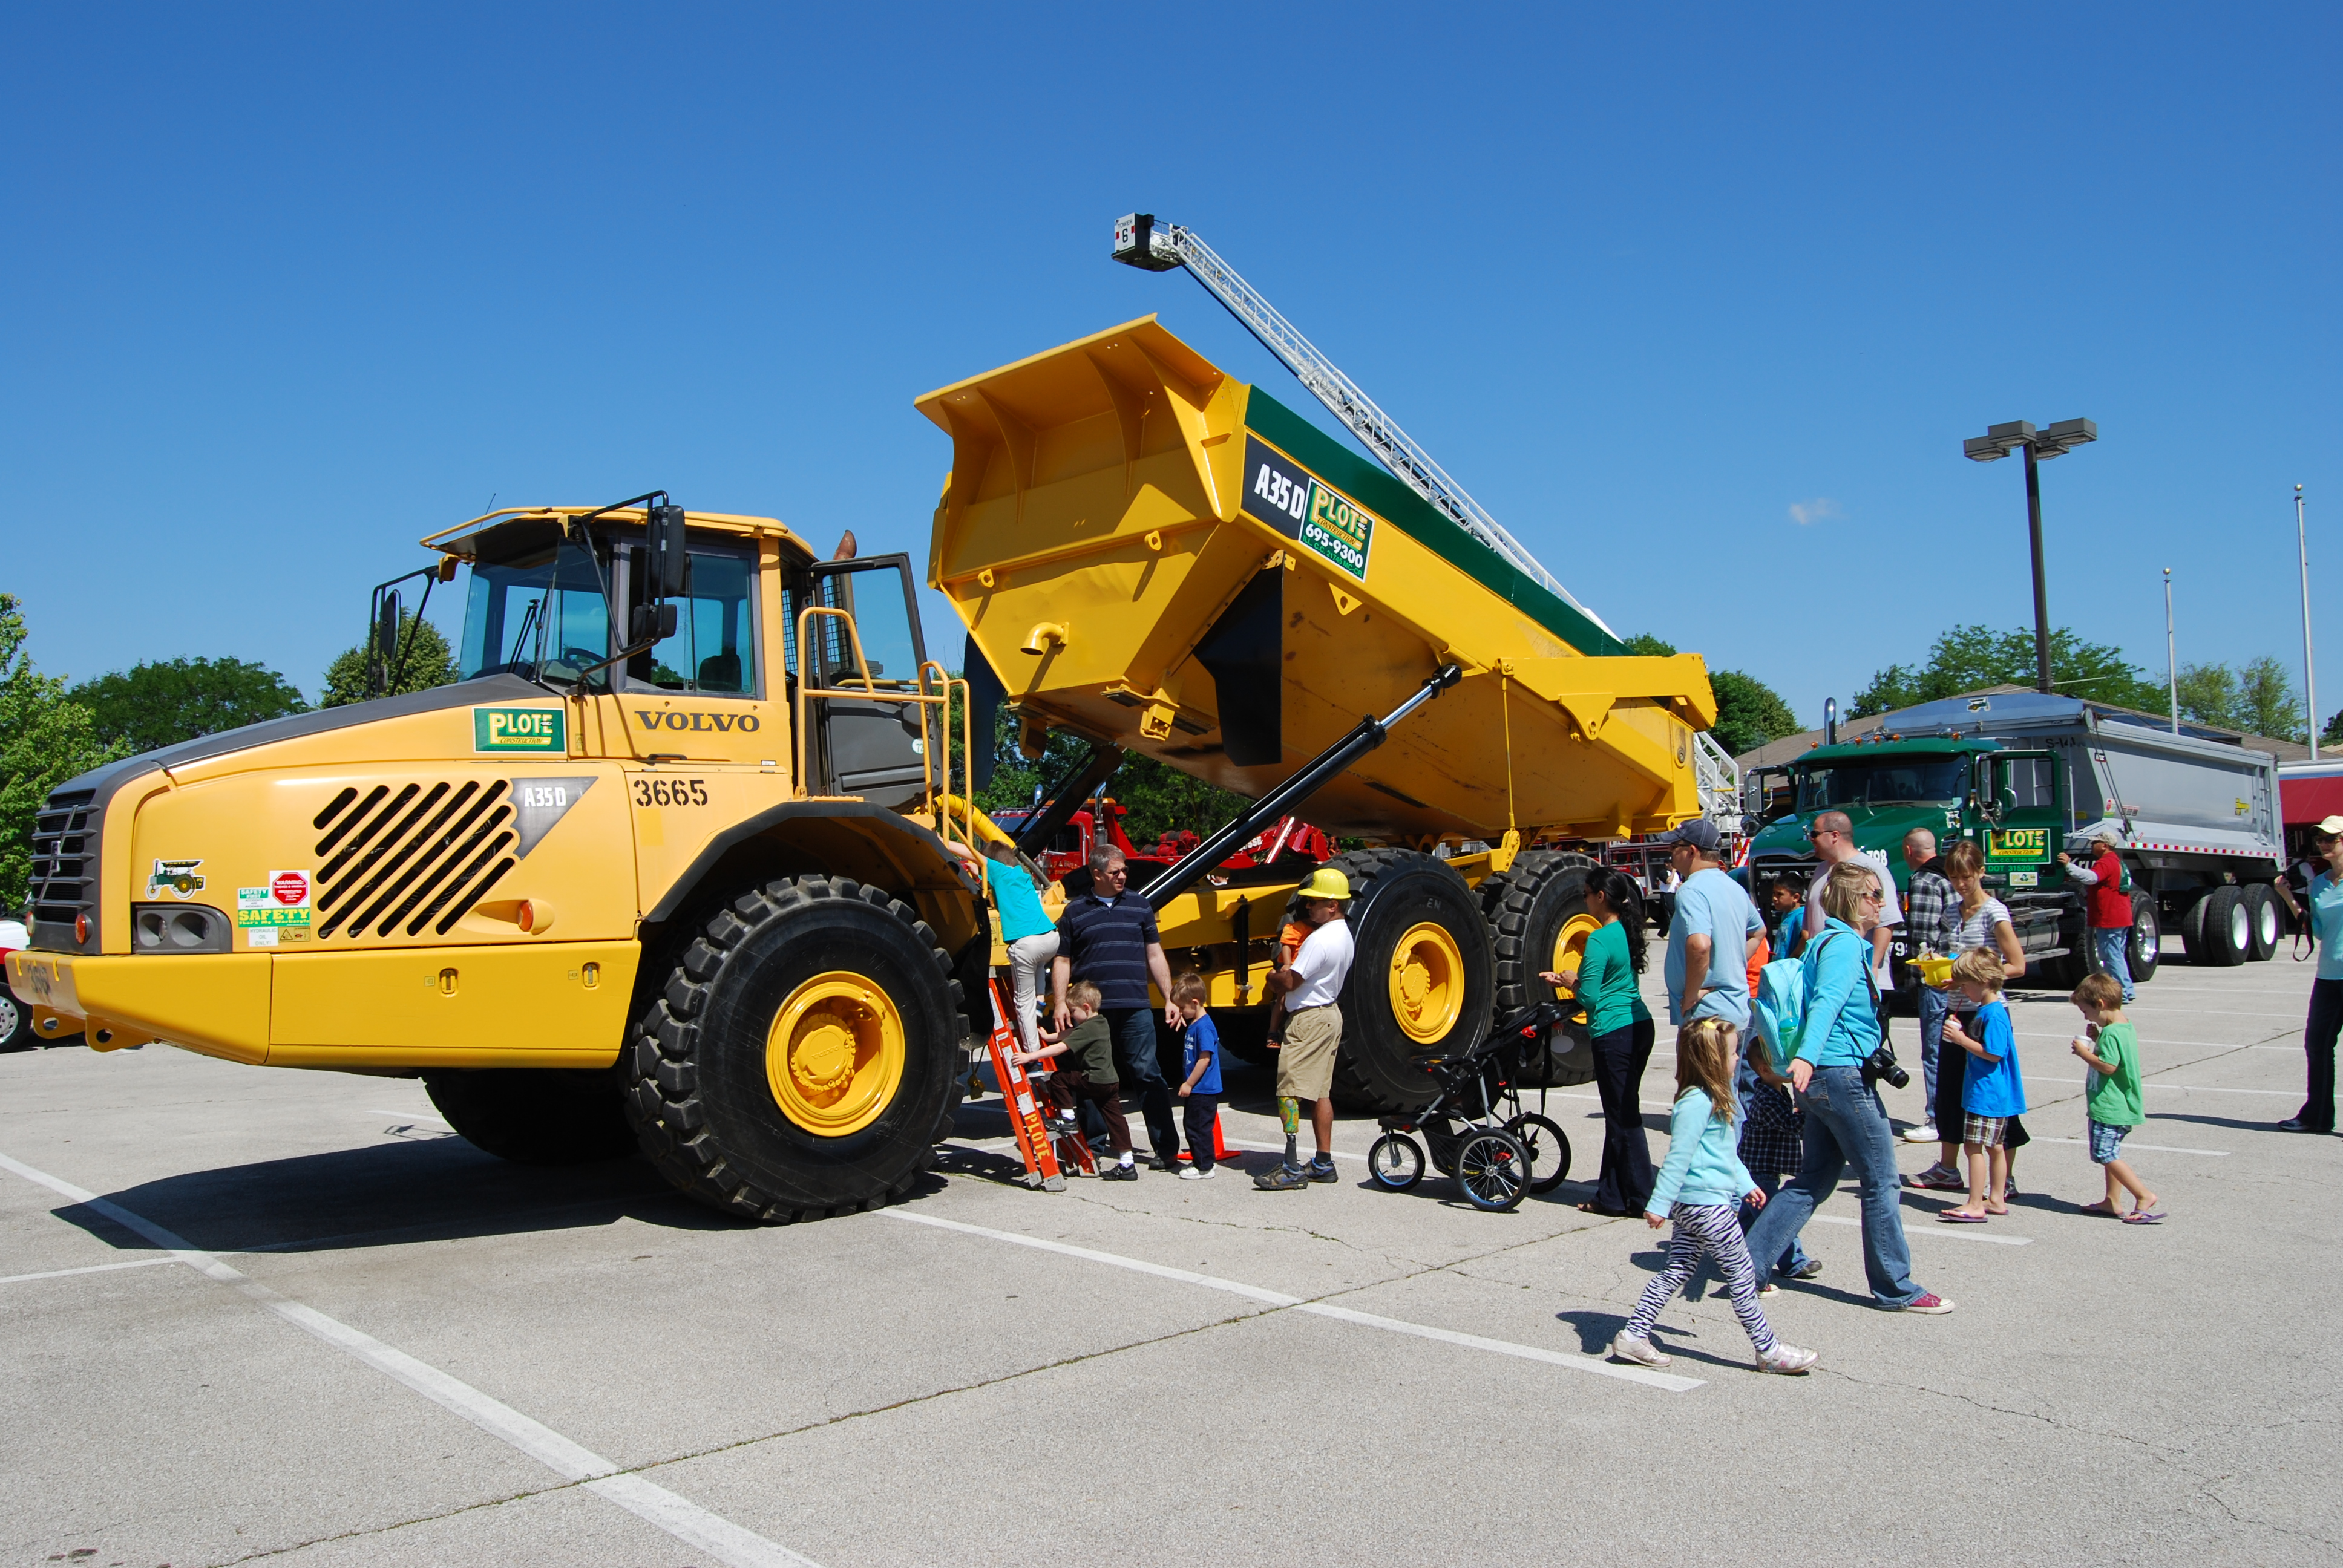 Hosted by the Junior Service League, Beaufort's first Touch a Truck event is coming to Port Royal on November 5th.